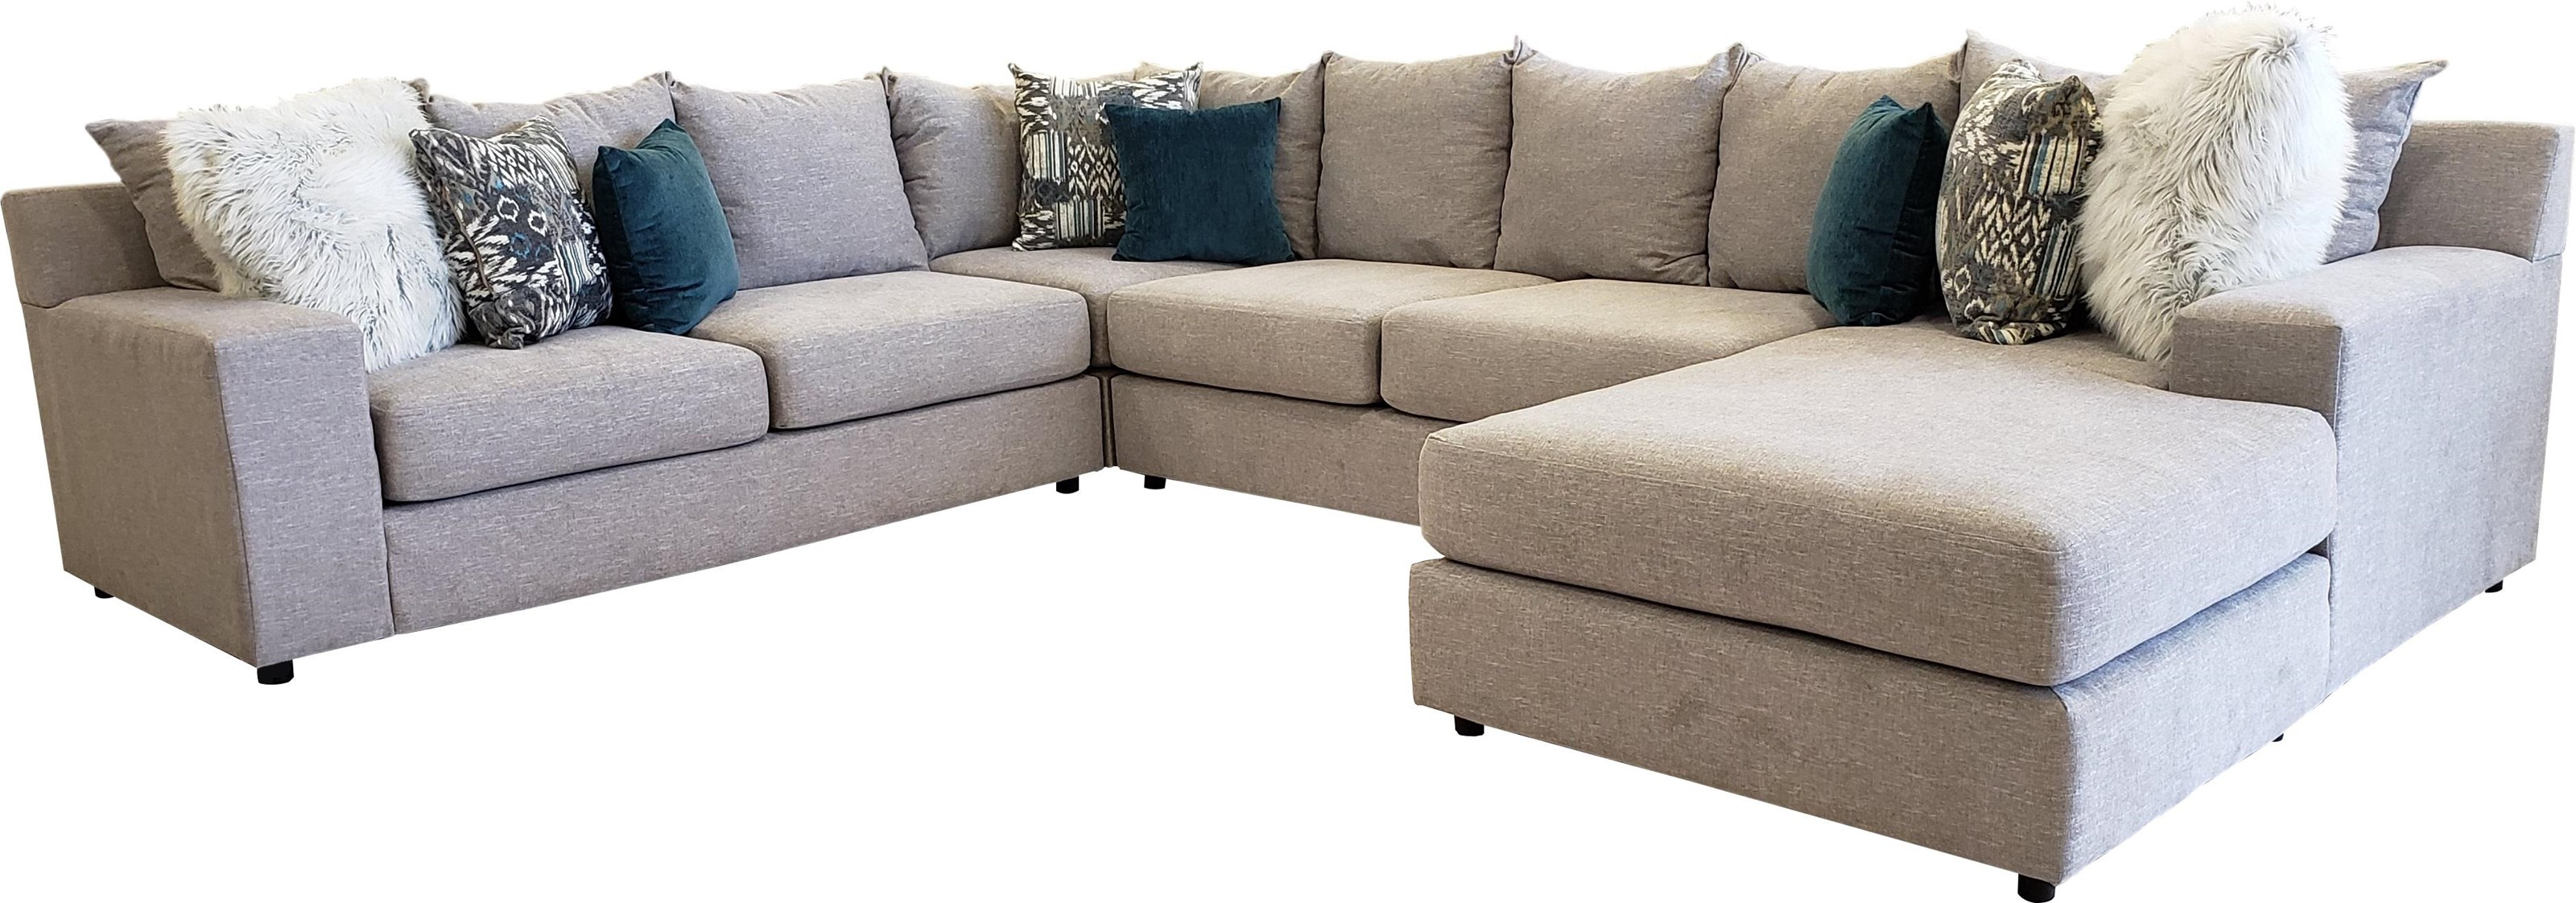 CASHMERE 4pc Large Sectional RAF Chaise by Phoenix Custom Furniture at Del Sol Furniture